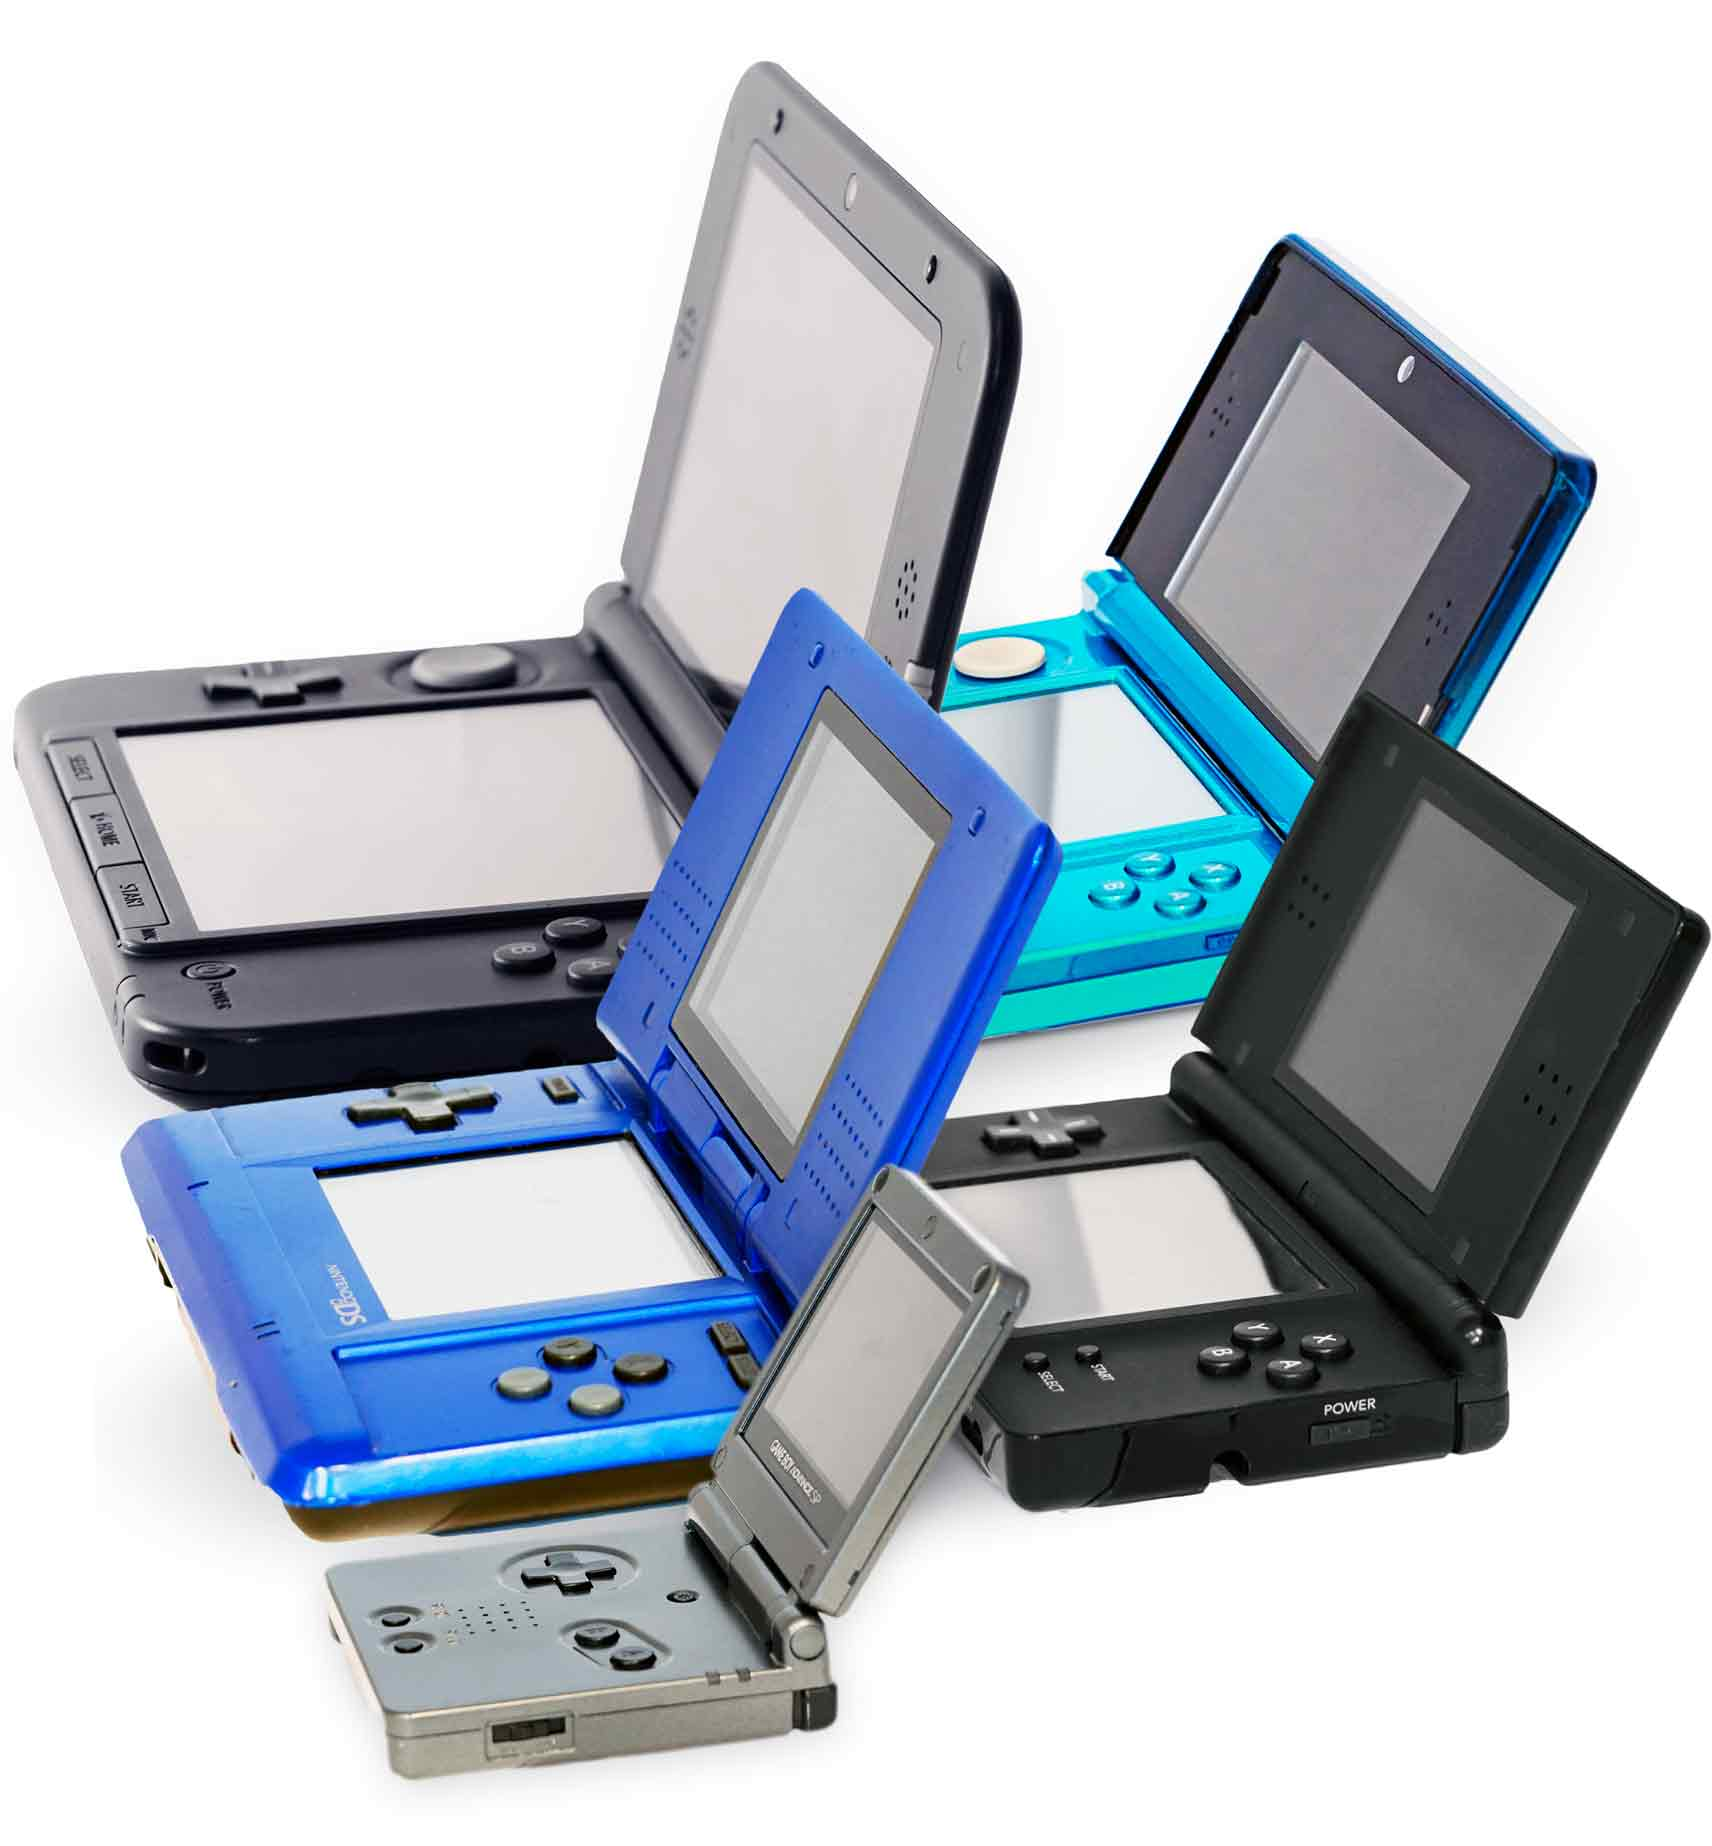 3DS-3DSXL-Dsi-DsiXL-Dslite-DS-New-3DS-2DS-repair